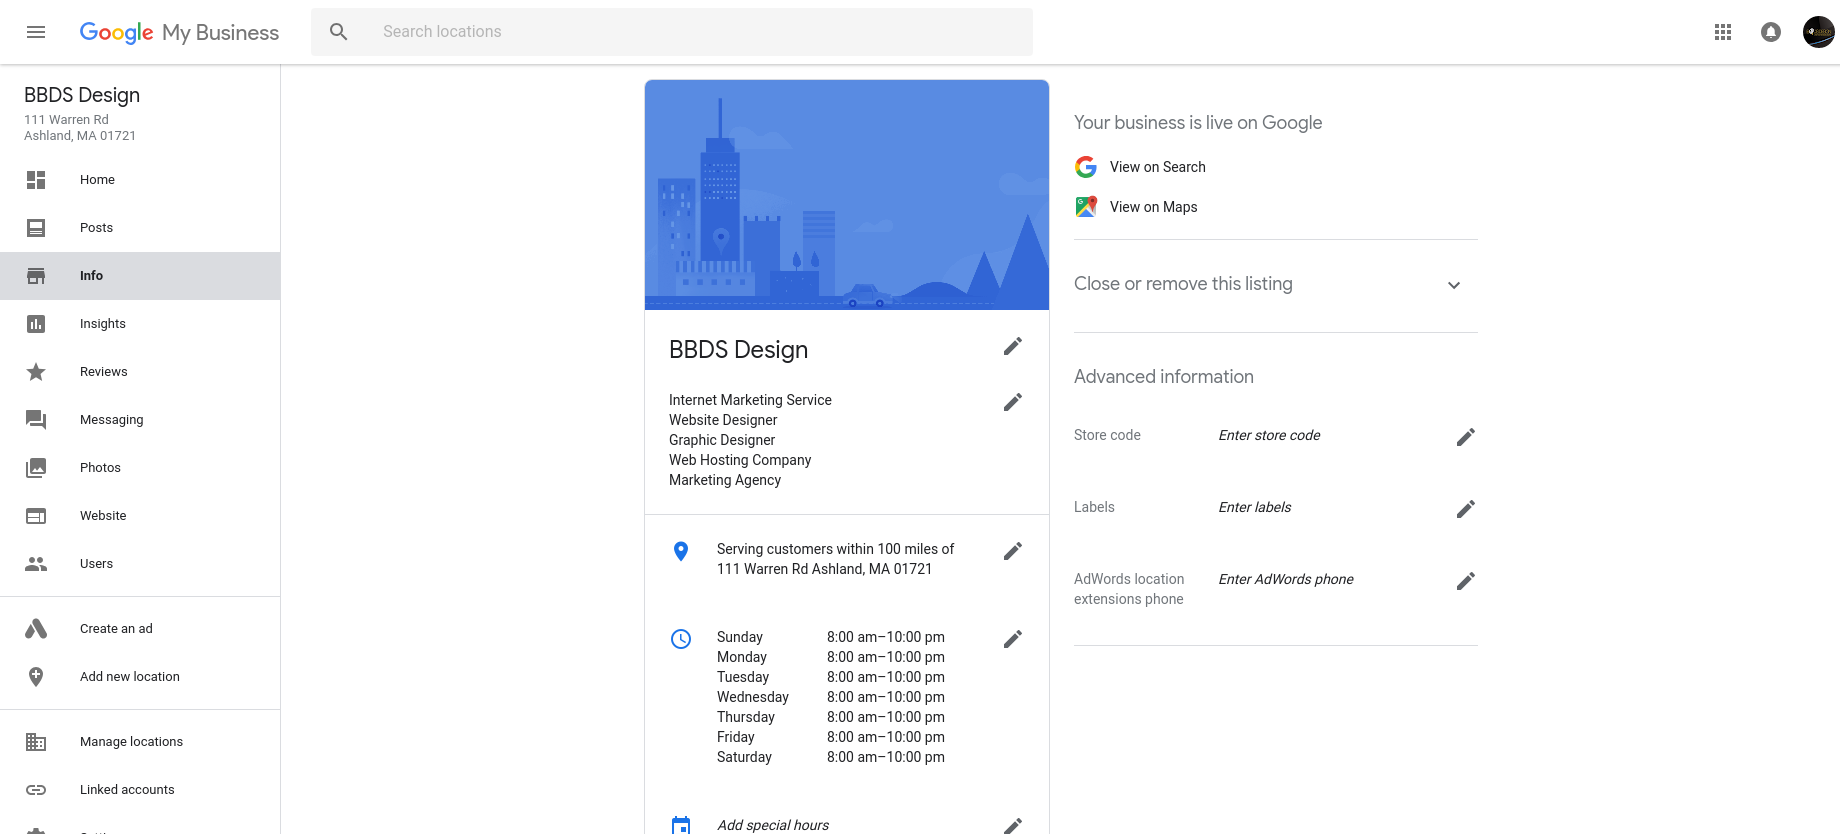 Google My Business account interface